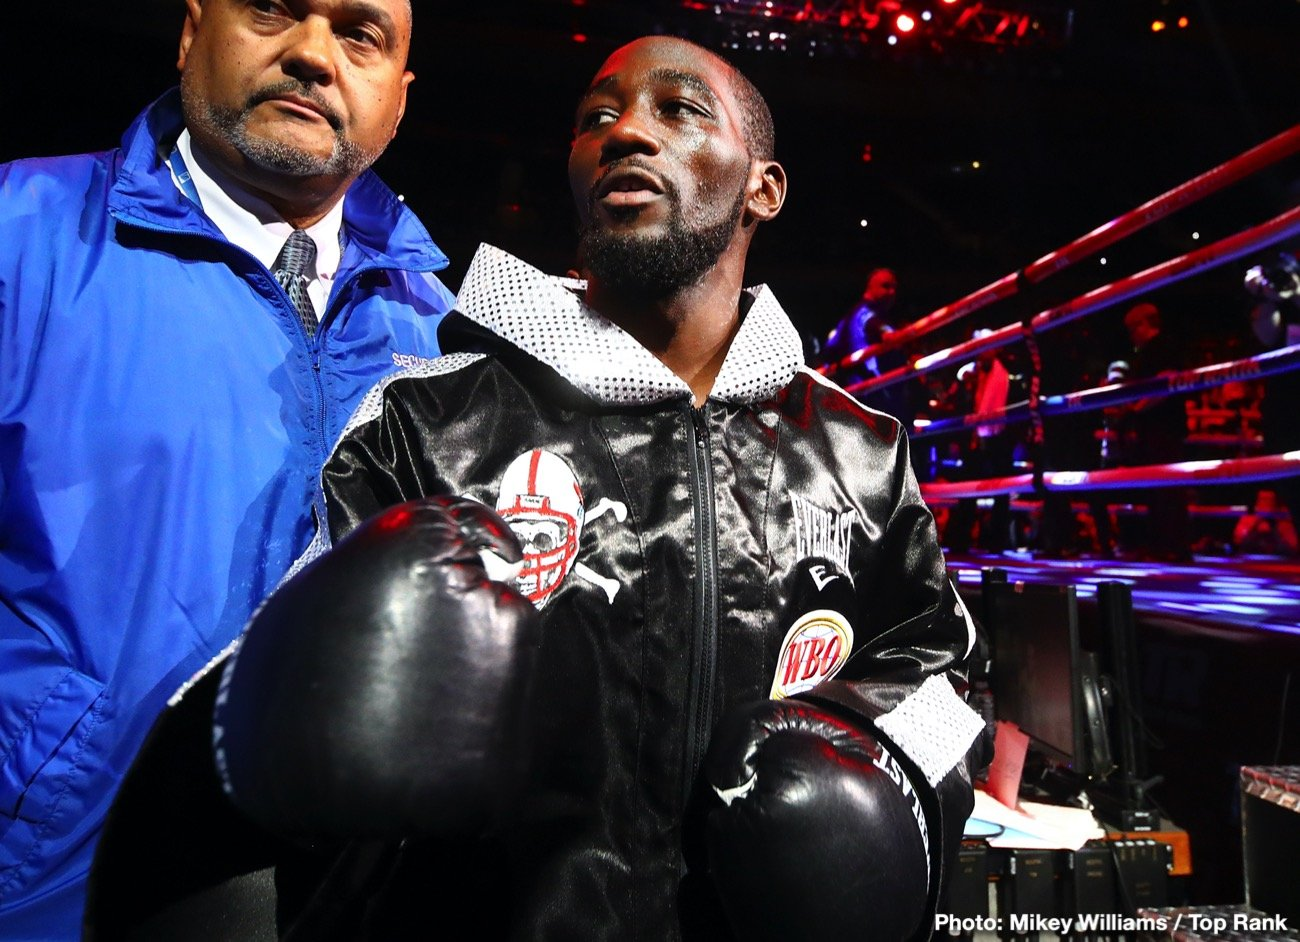 Top Rank Boxing - Terence Crawford insists that his promoters at Top Rank are going to need to pay him extra for him to agree to fight without fans if it comes to that due to the pandemic.